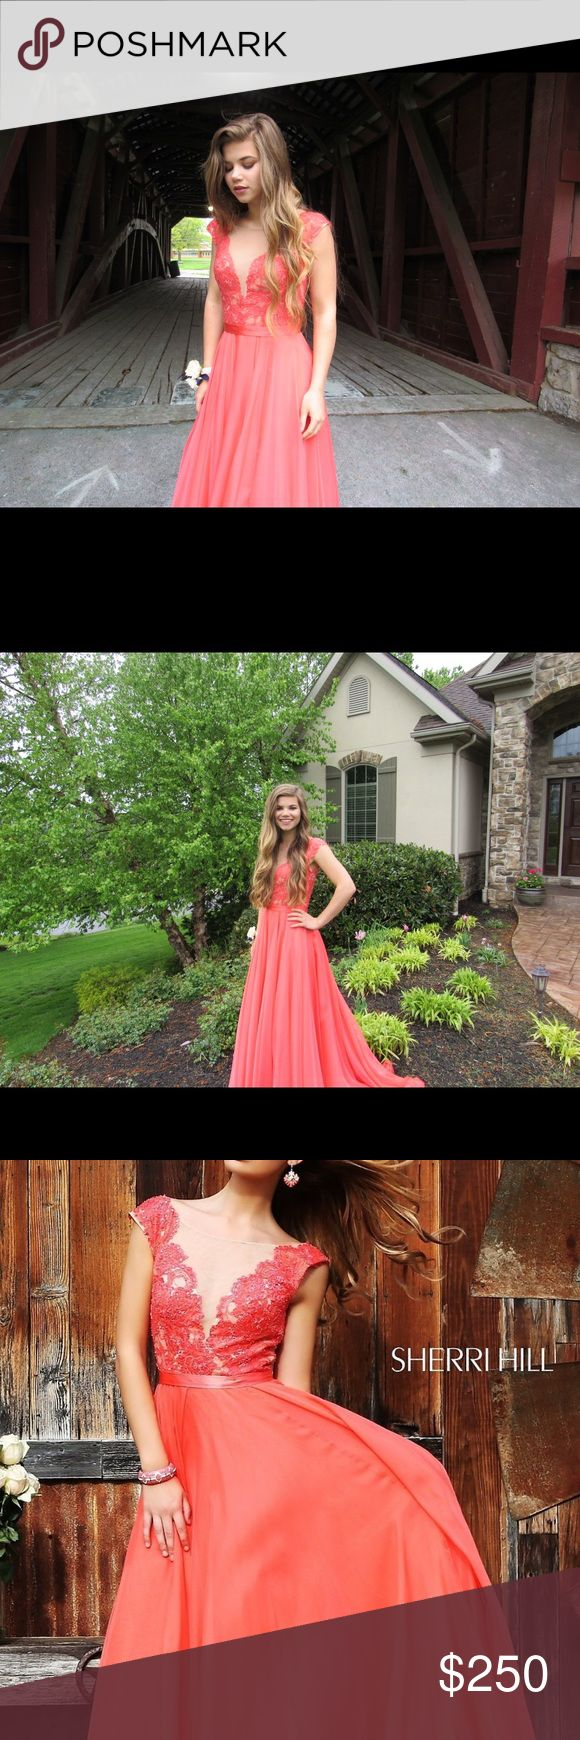 Sherri Hill size 2! Bought for $500! Worn once This was my prom dress this past year. It is such a gorgeous dress and I bought it for $500. Retail price is $550. I'm only asking $250 because I have no other use for it. Sherri Hill Dresses Prom